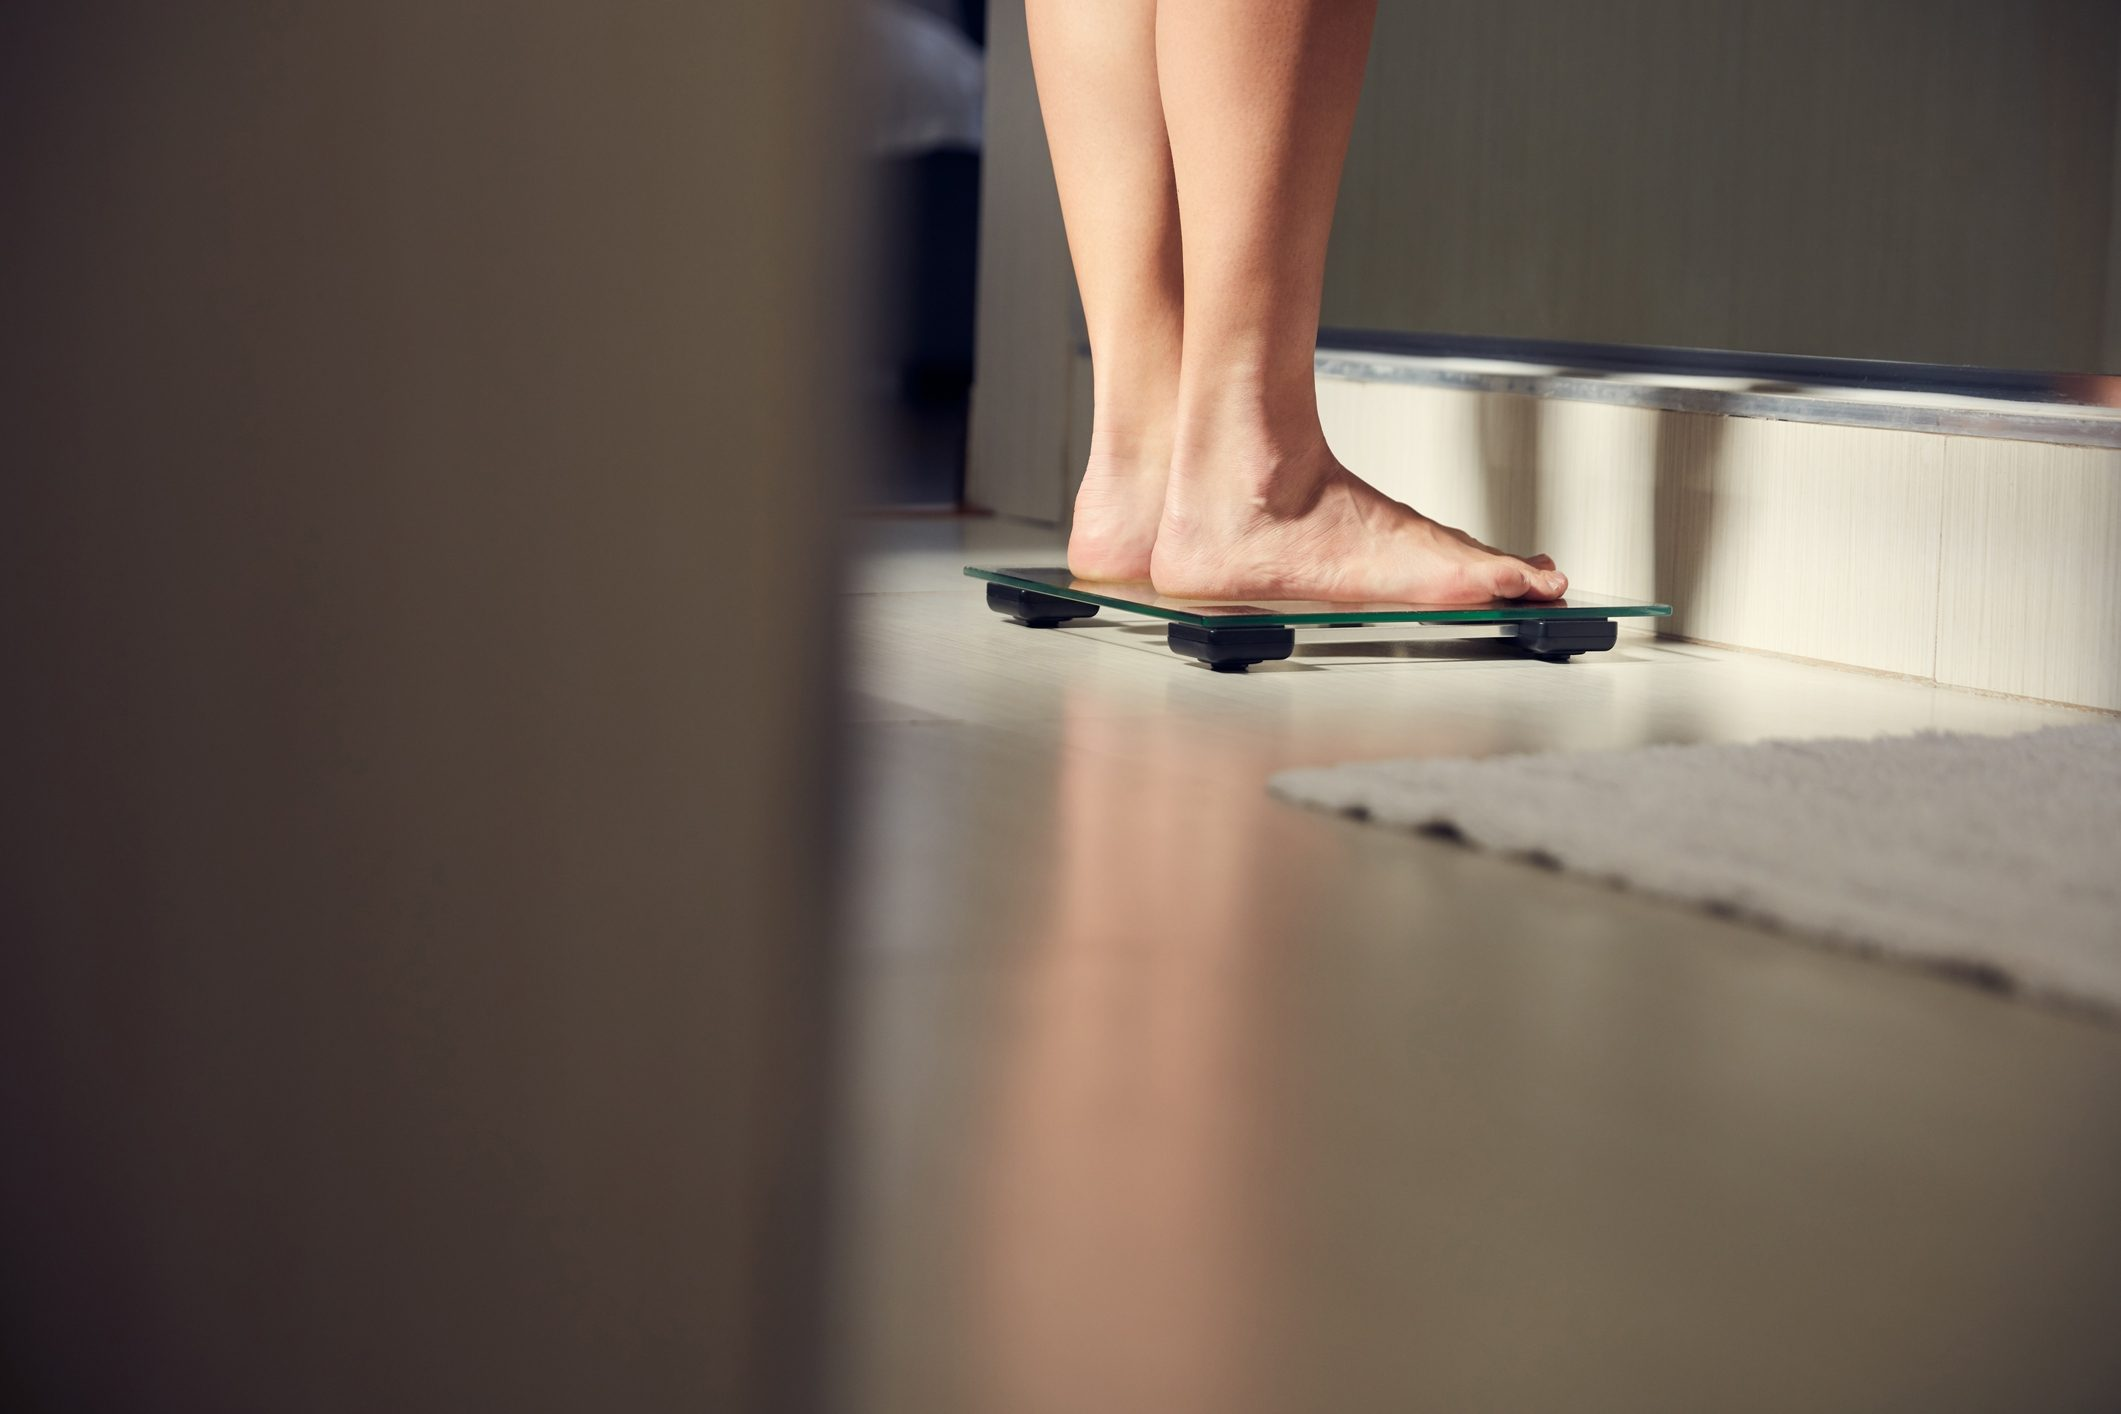 shot of an unrecognizable woman weighing herself on a scale at home in bathroom